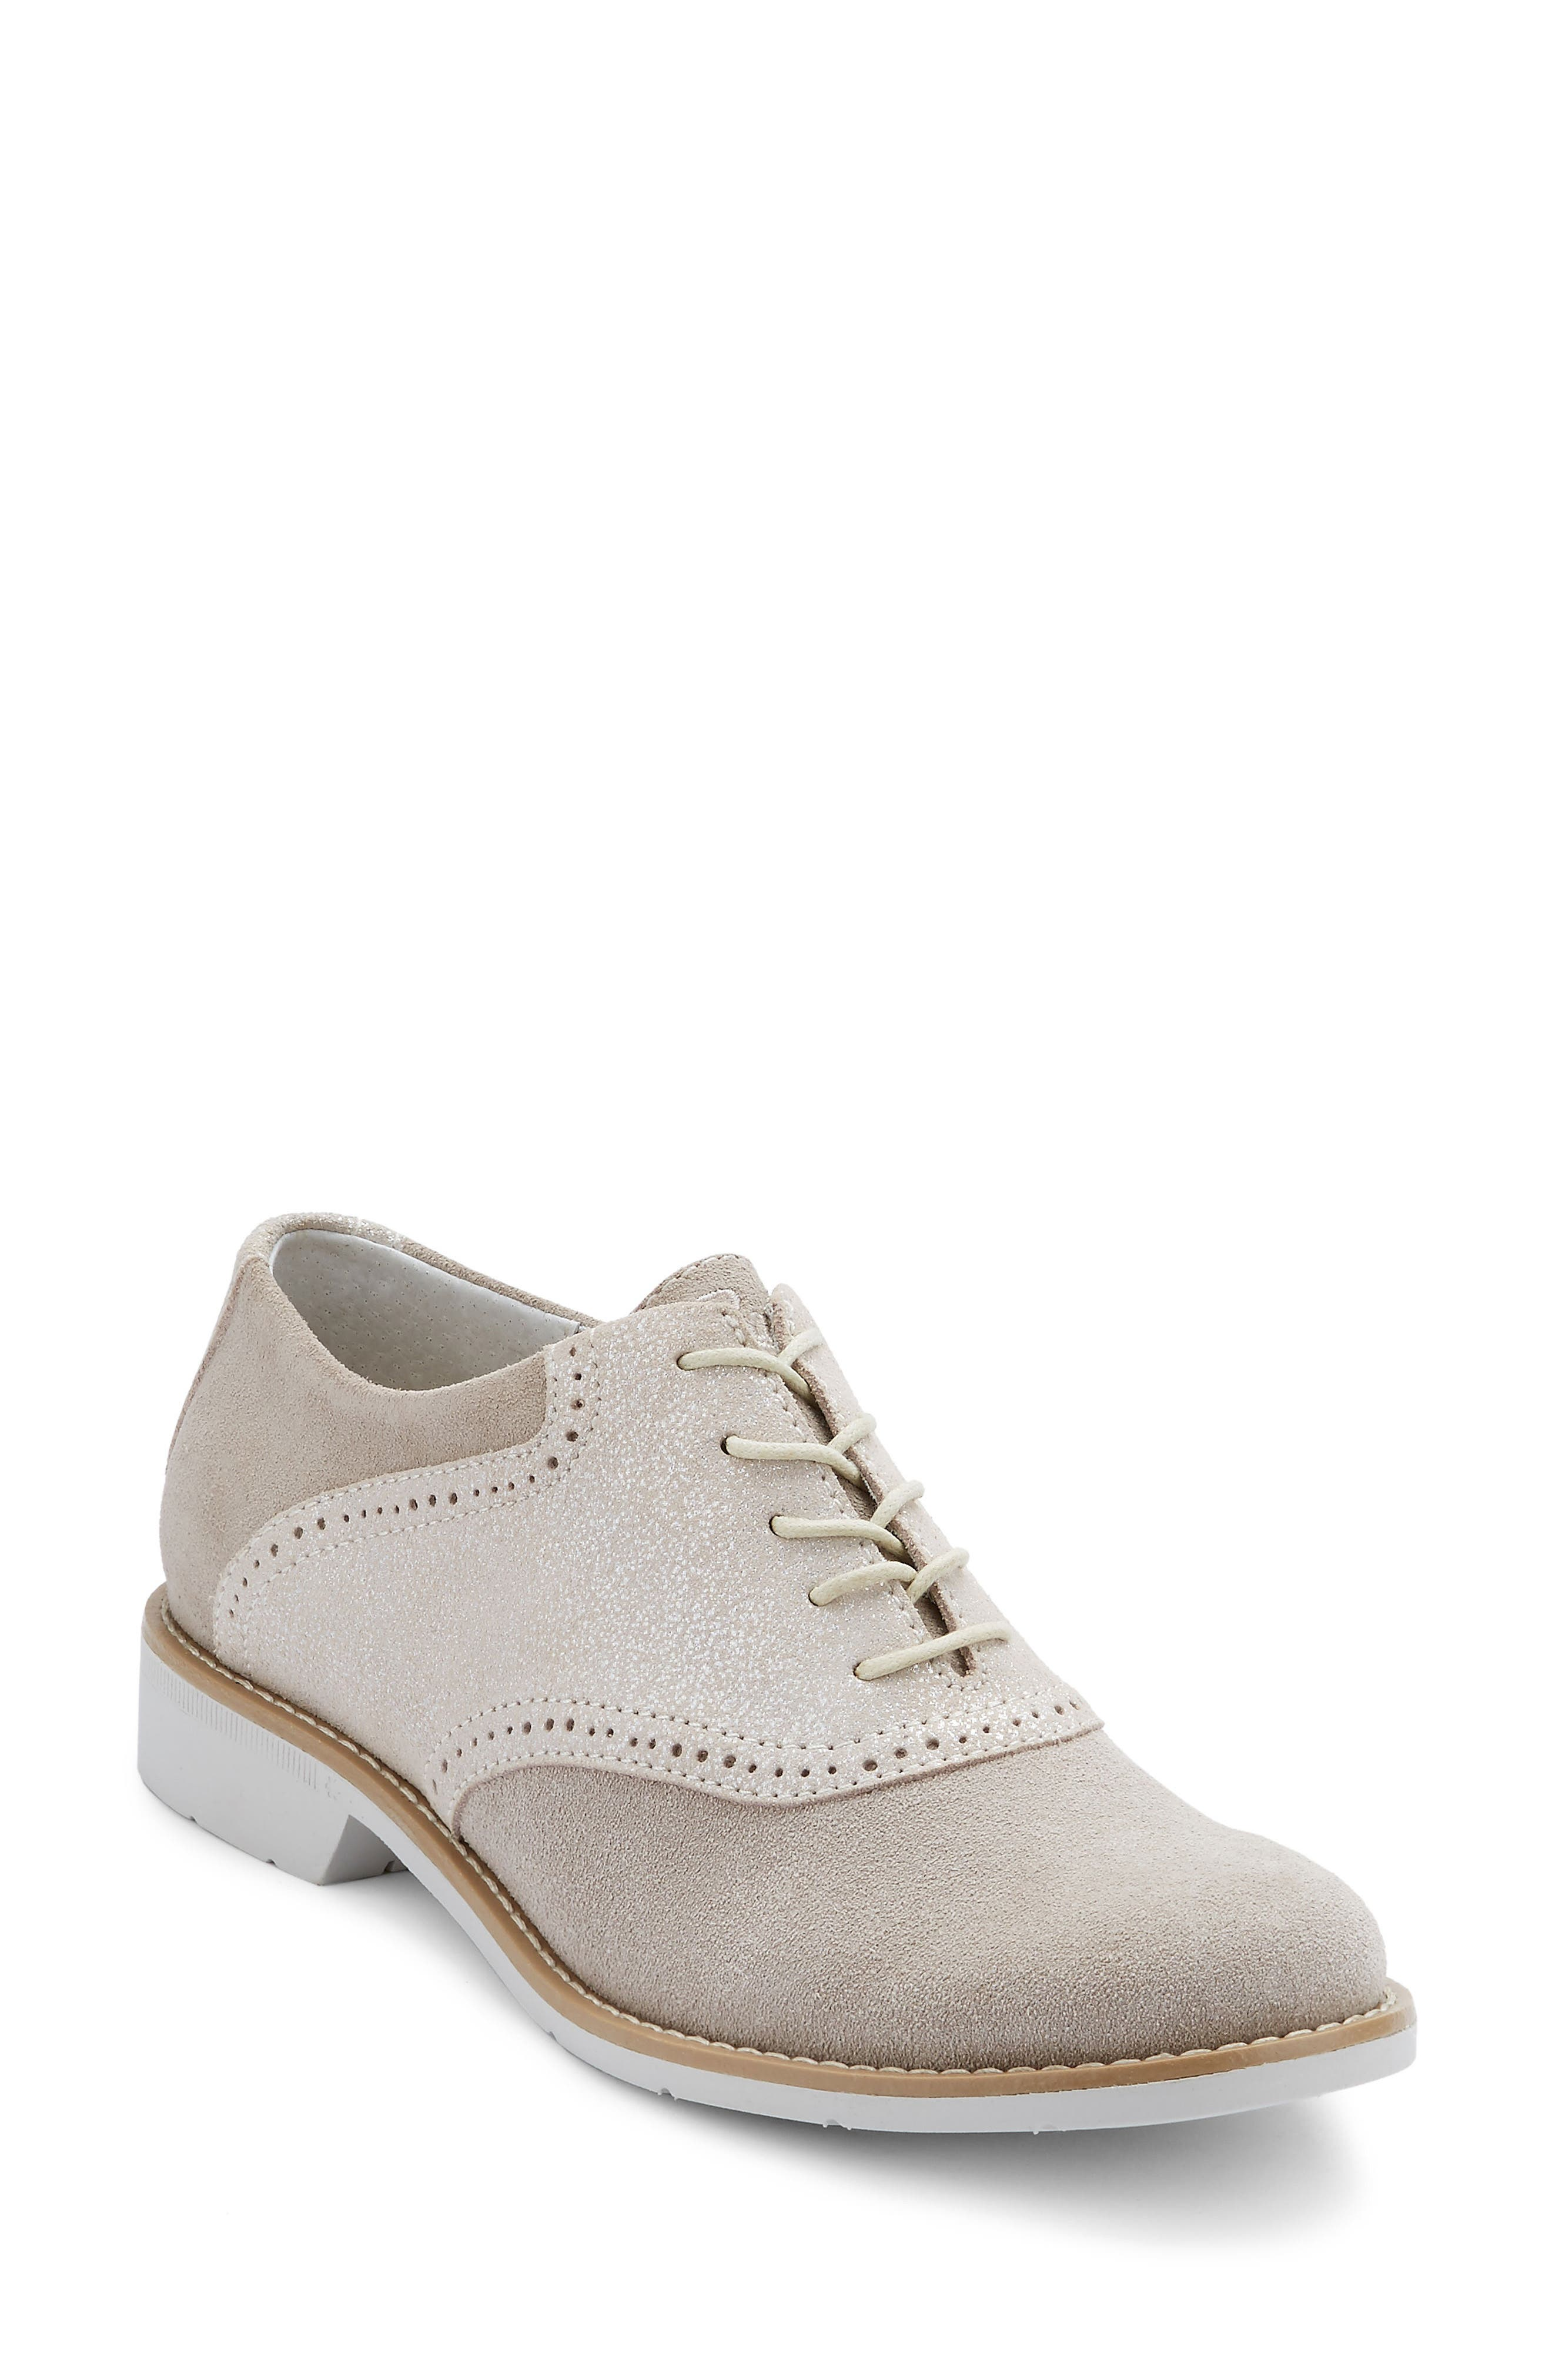 Alternate Image 1 Selected - G.H. Bass and Co. Dora Lace-Up Oxford (Women)